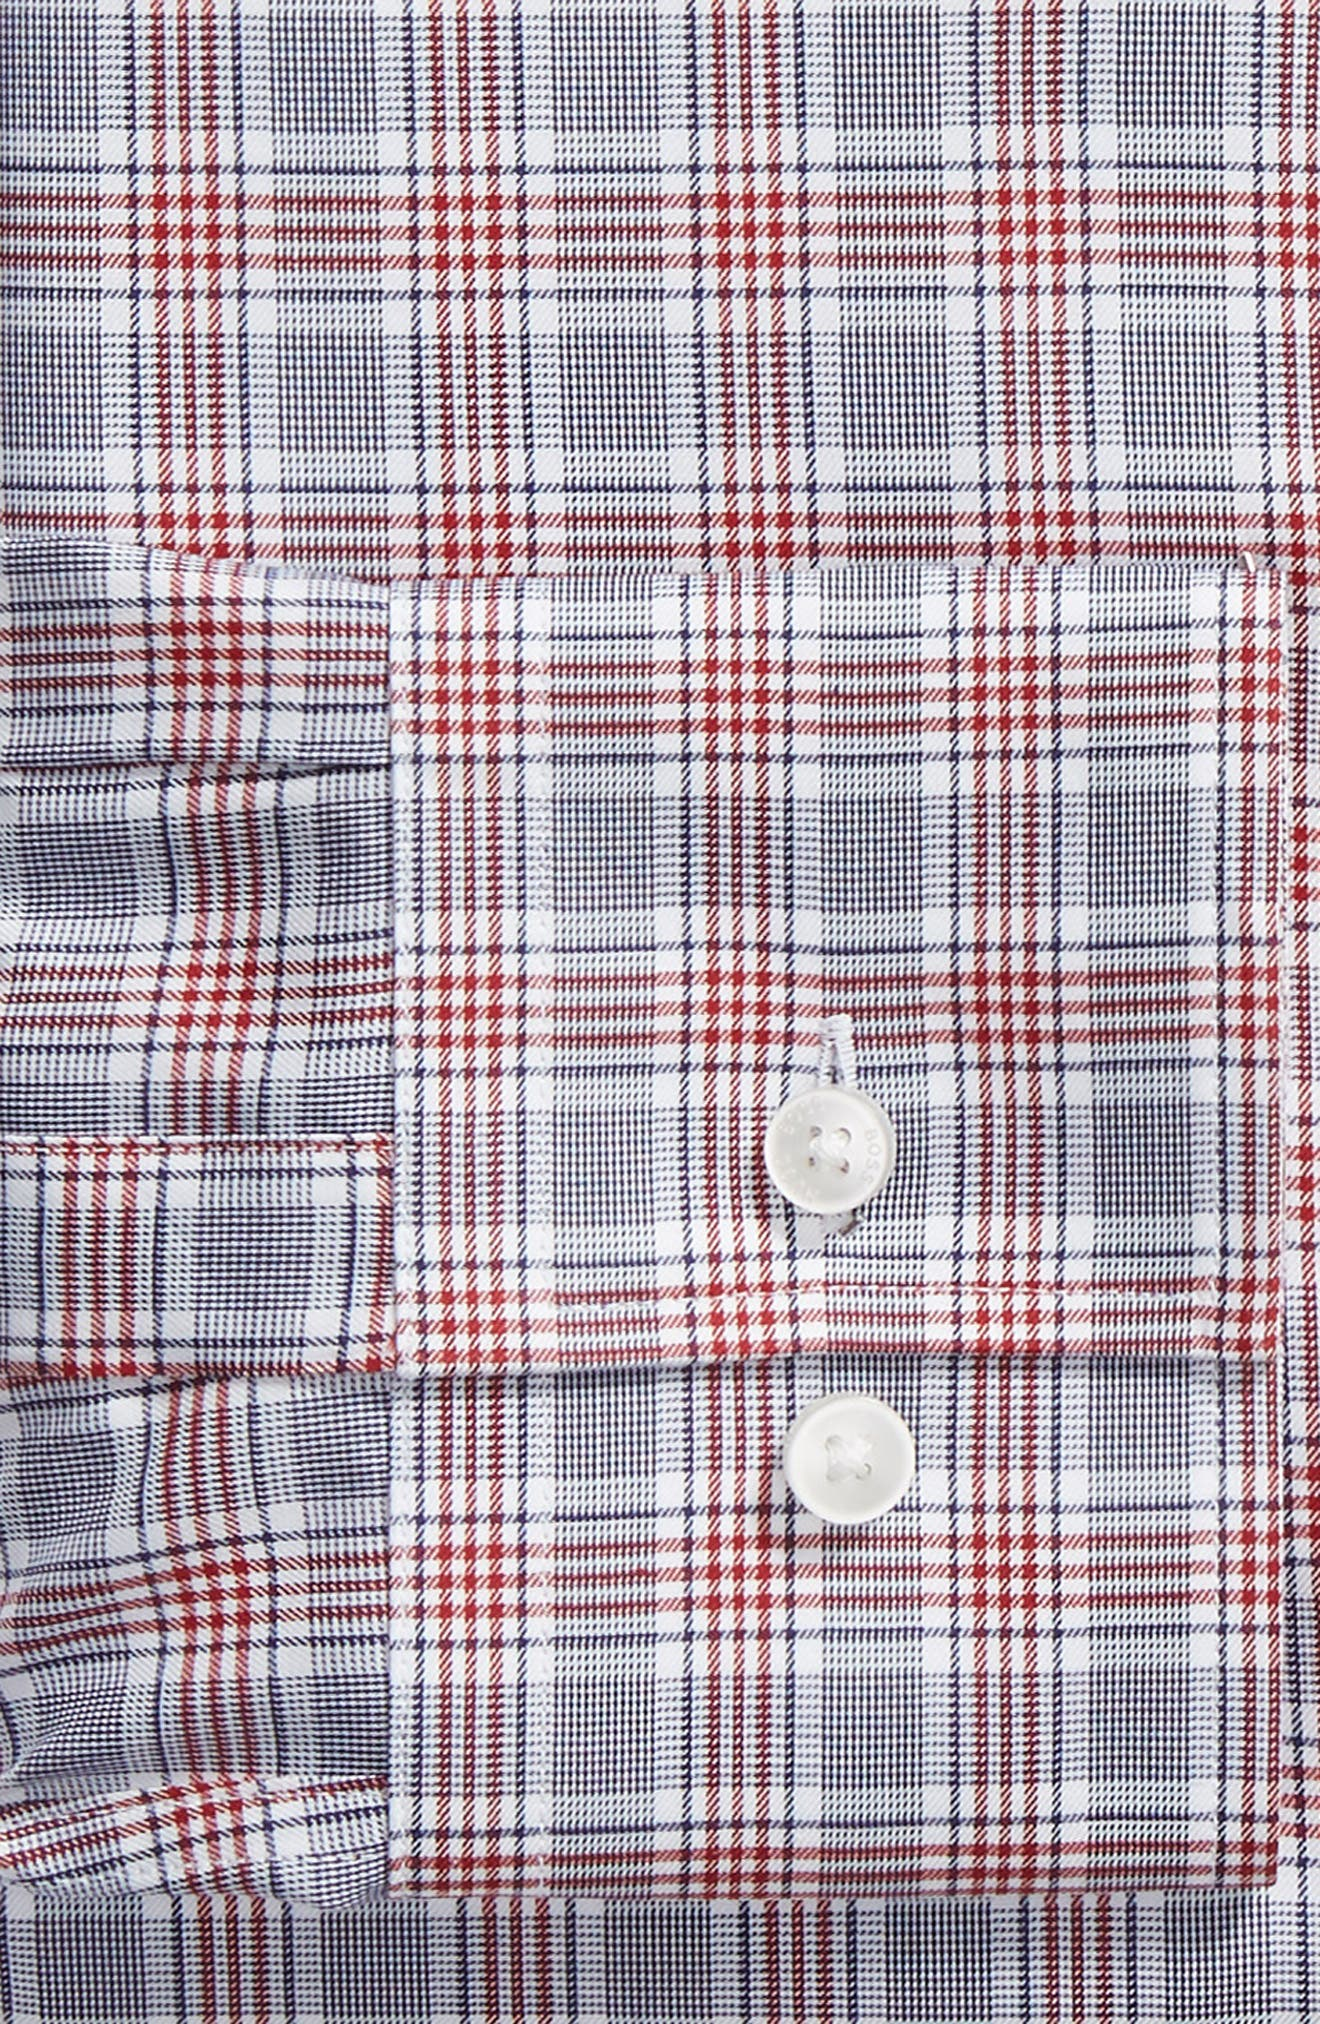 Jason Slim Fit Plaid Dress Shirt,                             Alternate thumbnail 6, color,                             DARK RED